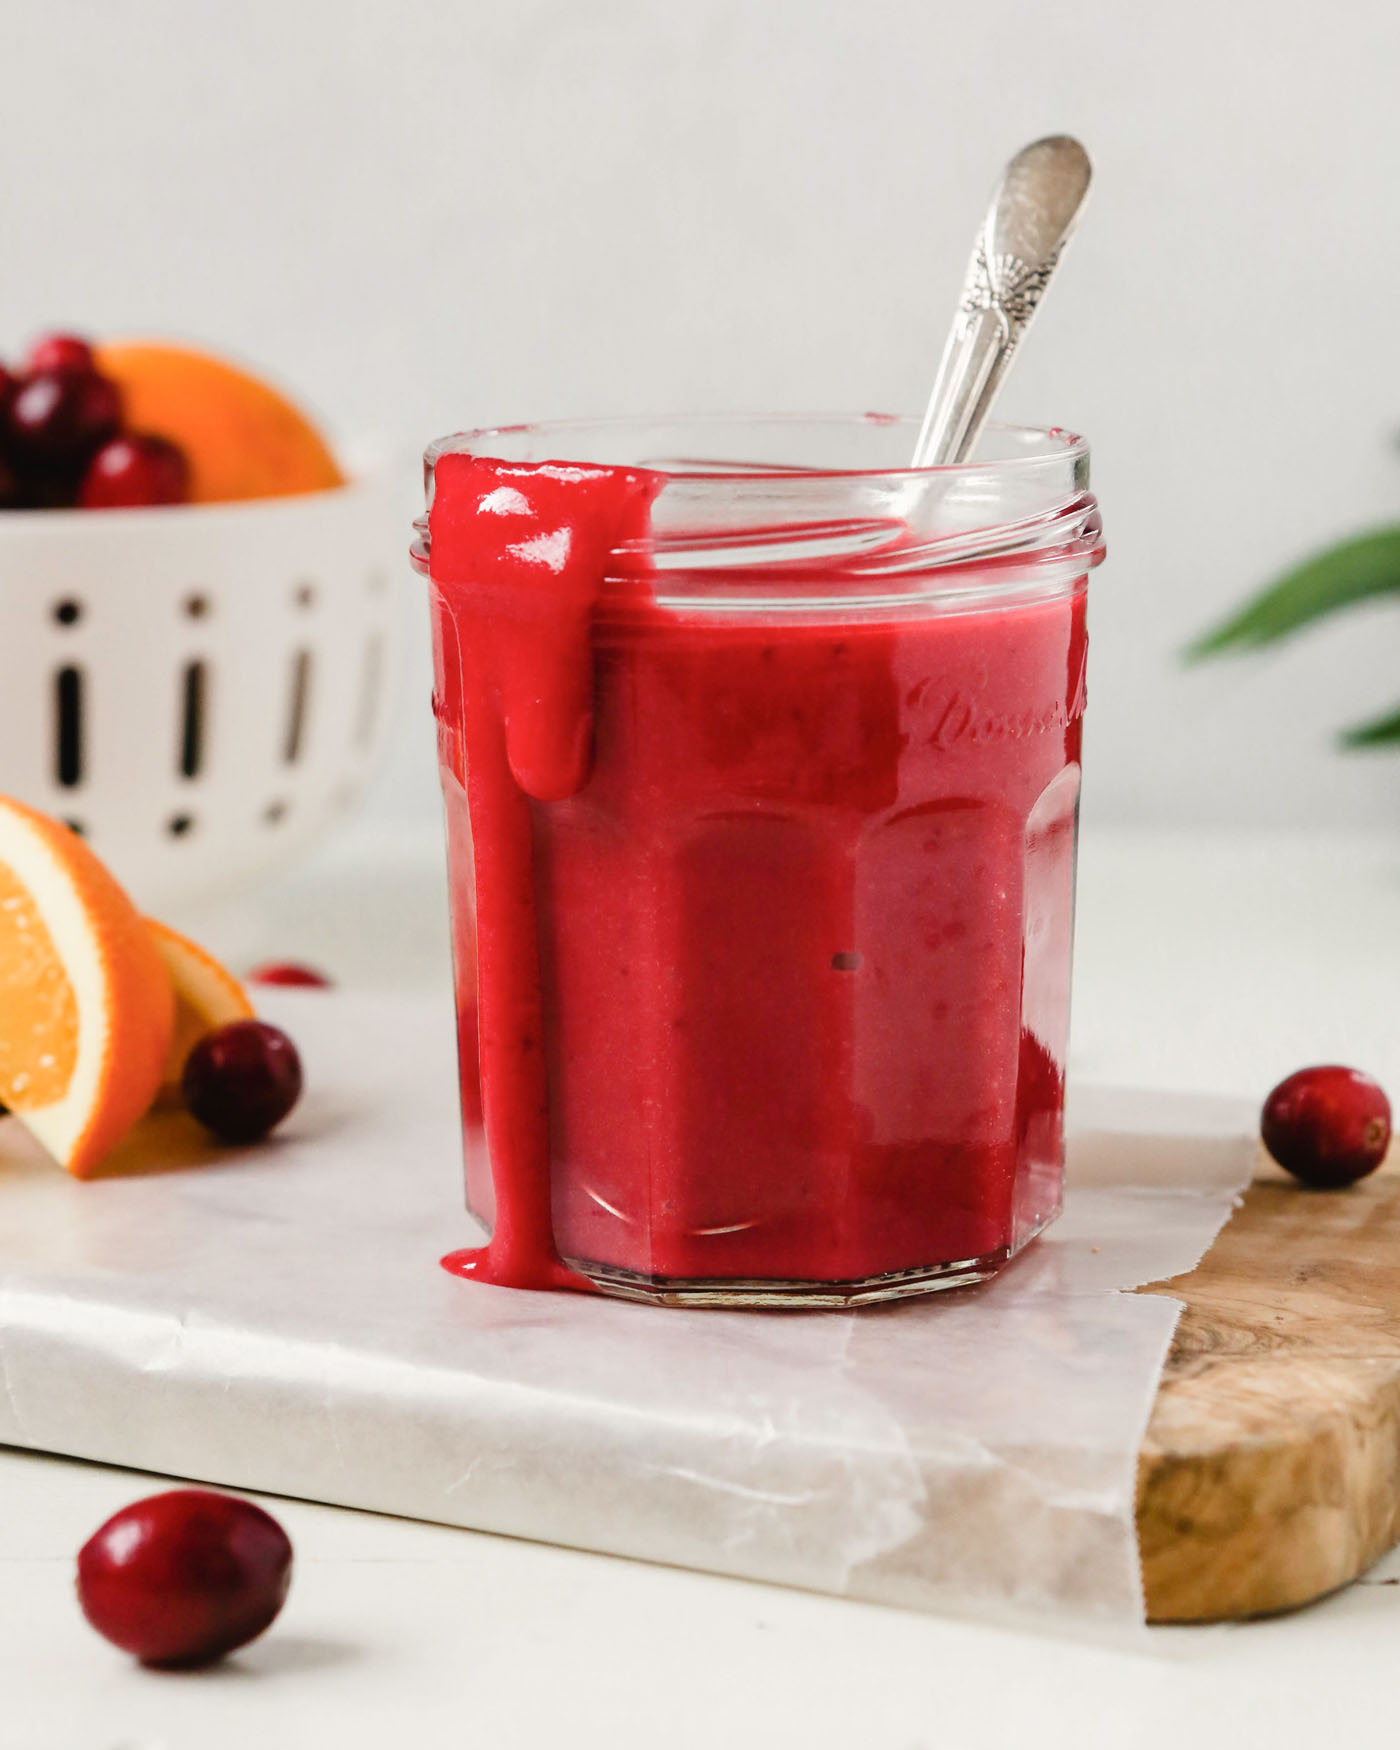 Side angle of a bright pink curd dripping out of a glass jar set on a wood cutting board